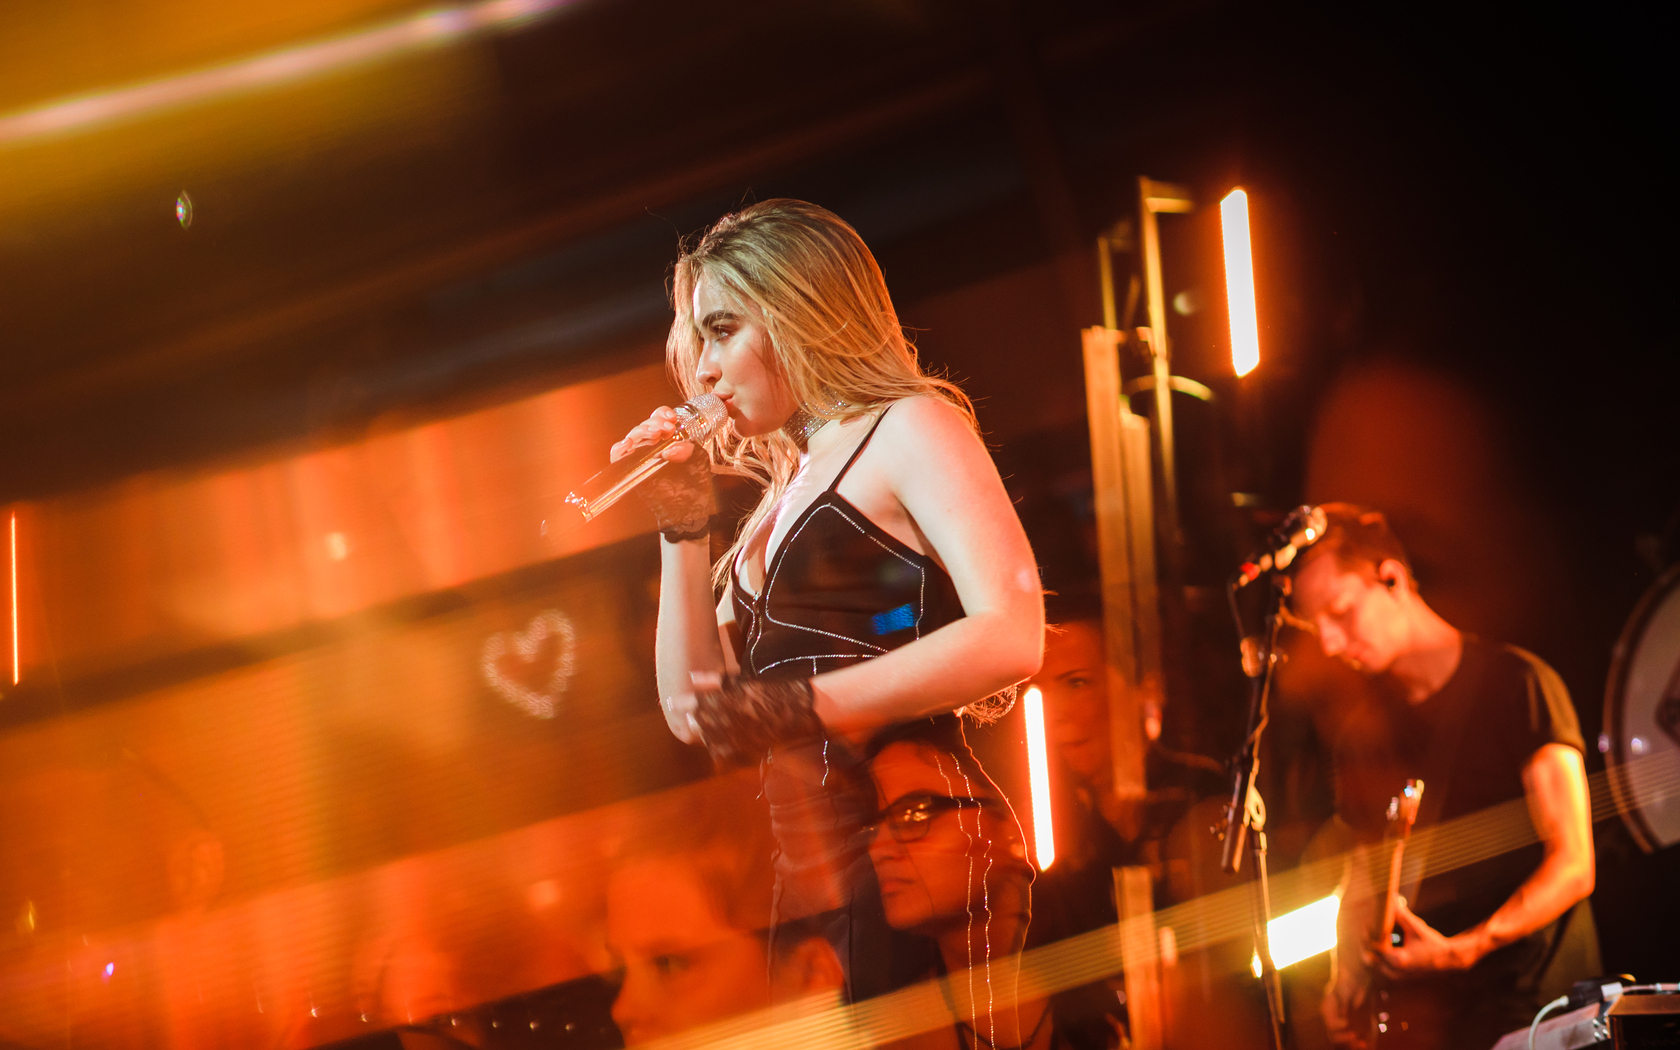 sabrina-carpenter-american-singer-live-performance-2018-5k-48.jpg